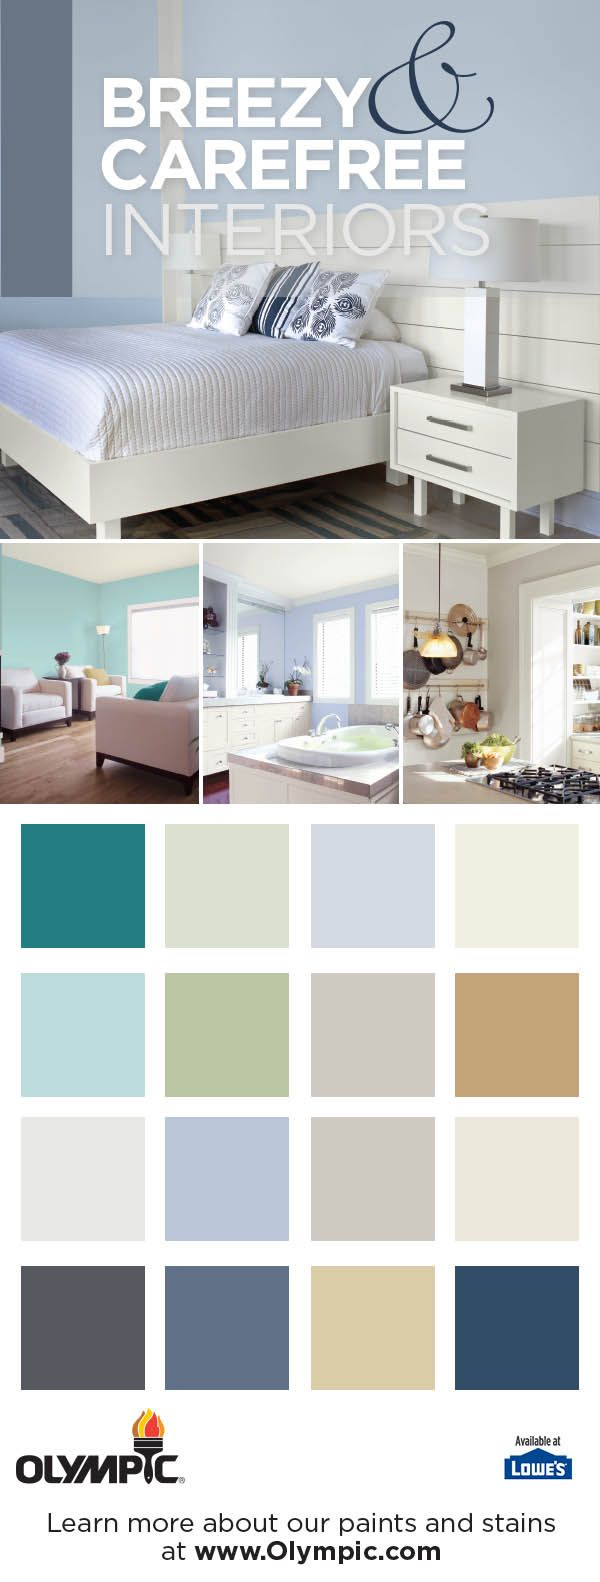 20 Best Breezy Carefree Paint Colors Images On Pinterest Olympic Paint Colors And Wall